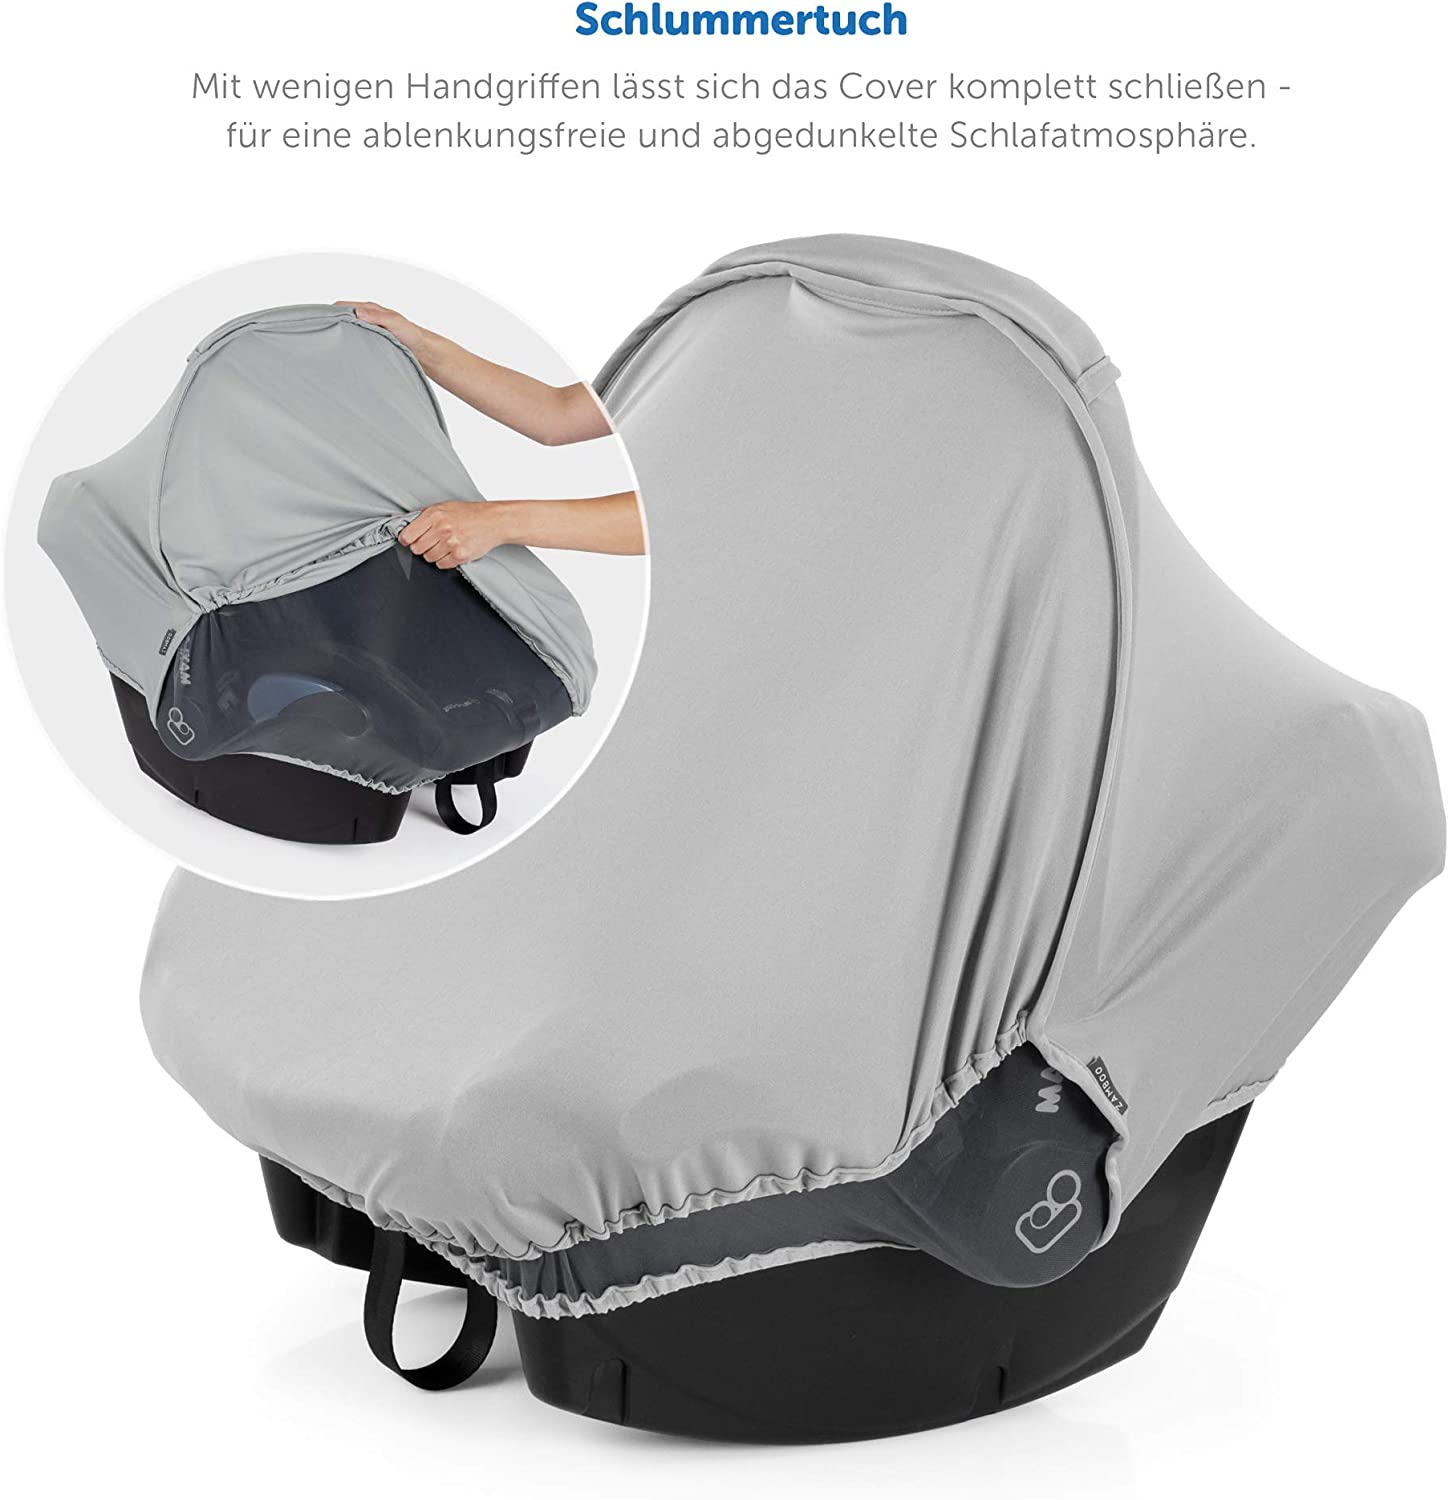 Baby Car Seat Cover Zamboo Infant Car Seat Mosquito Net and Blackout Cover to fit Maxi-Cosi // Cybex // Graco // Britax // Joie // Cosatto 3 in 1 Infant Car Seat Sun Shade with UV Protection - Grey